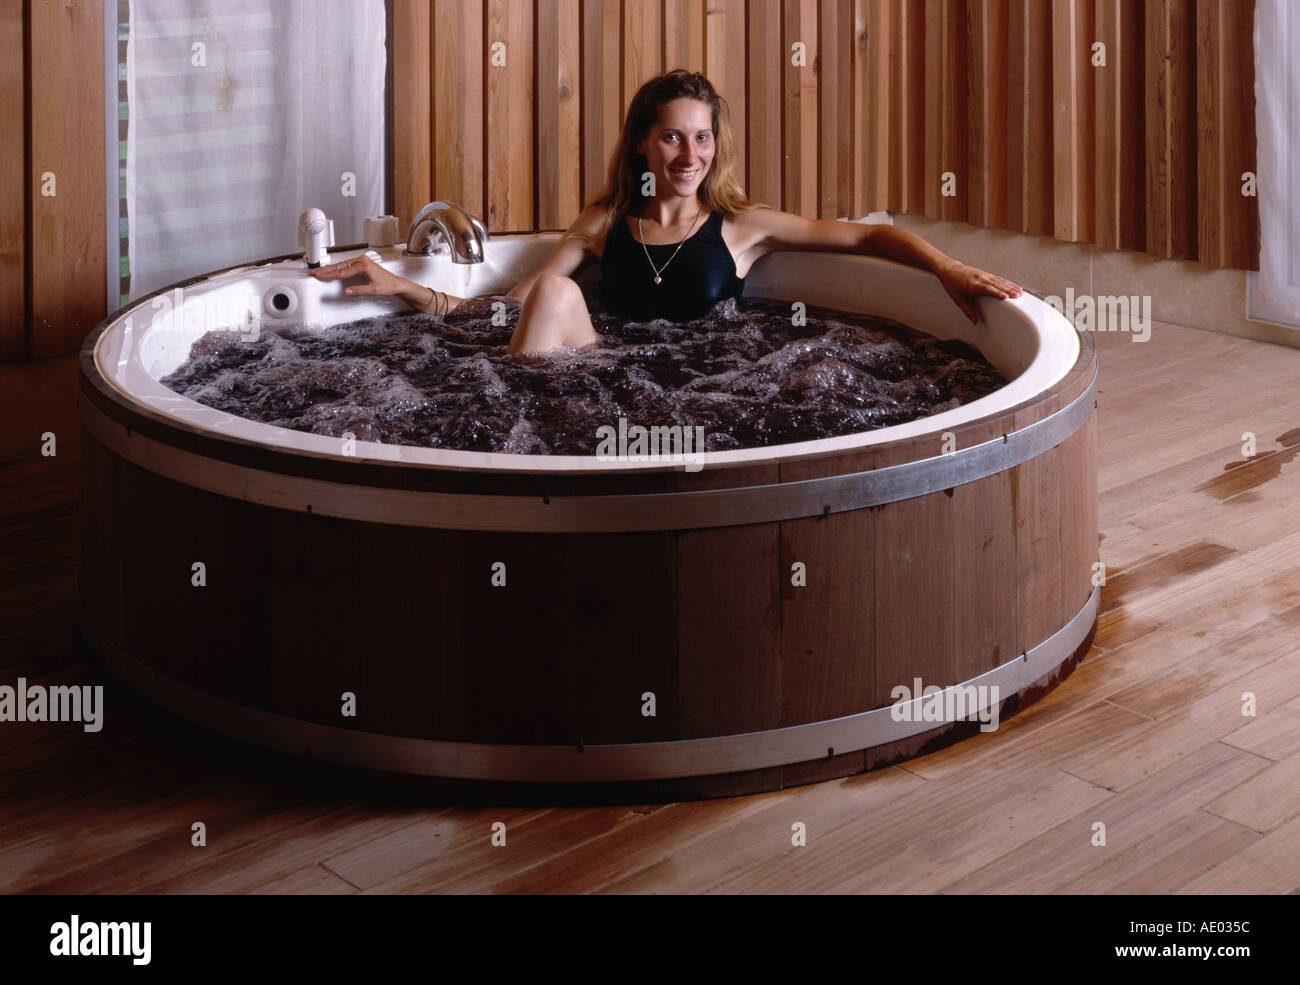 woman in barrel bath at les sources de caudalie wine spa at chateau stock photo 918364 alamy. Black Bedroom Furniture Sets. Home Design Ideas